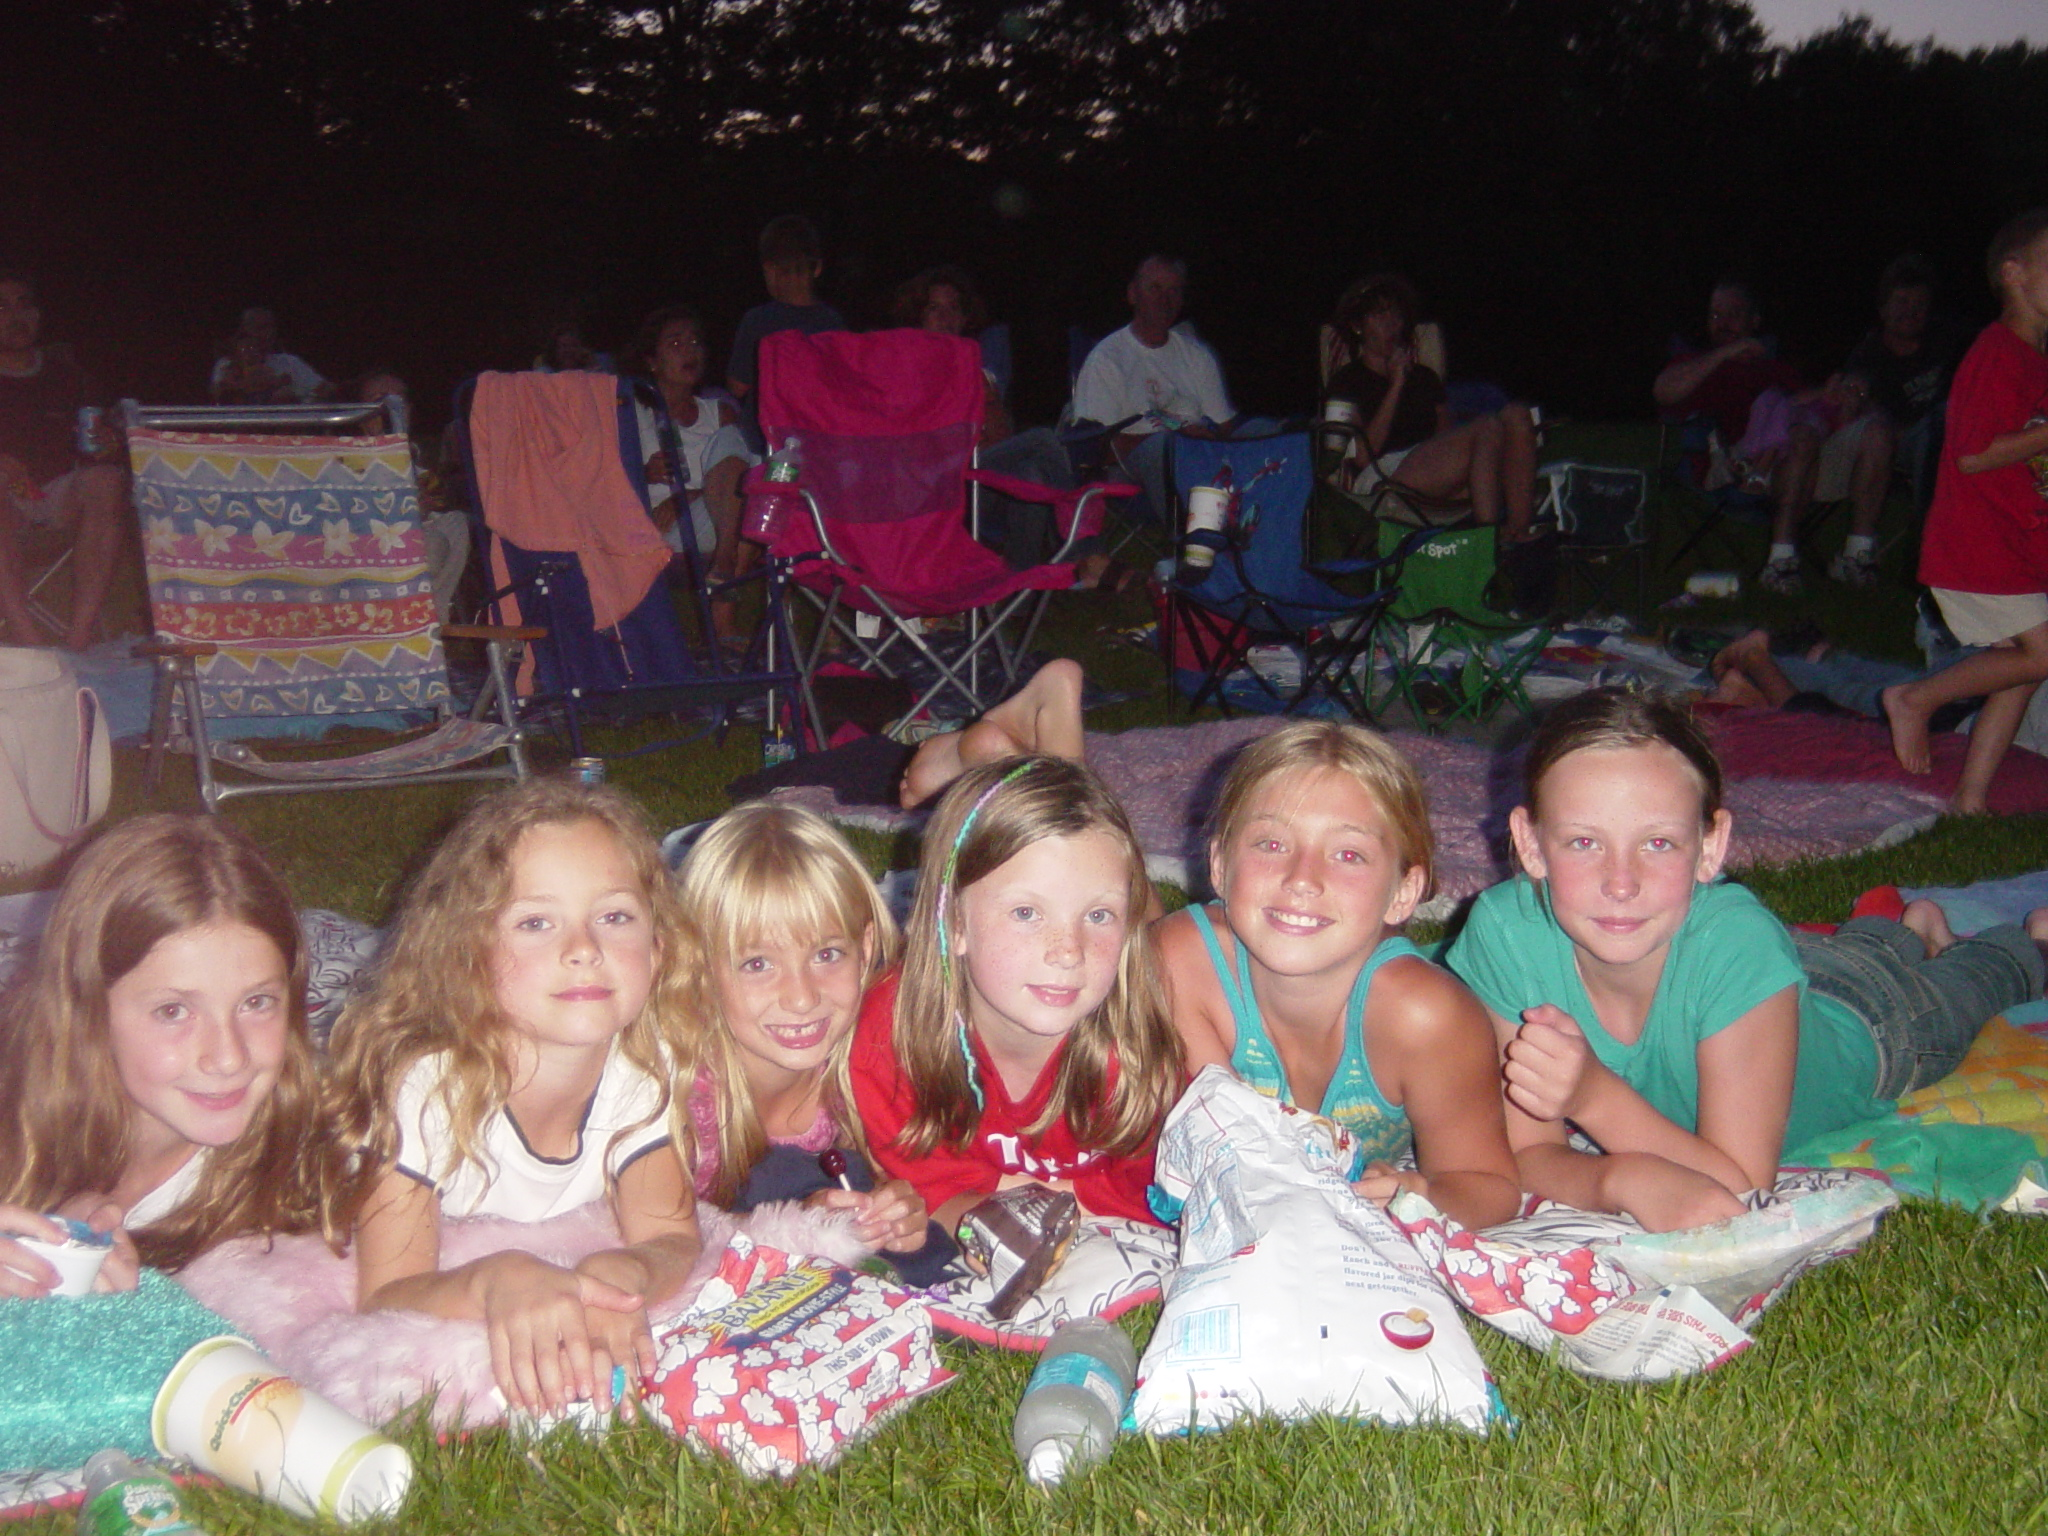 girls lined up lying on a blanket to watch movie